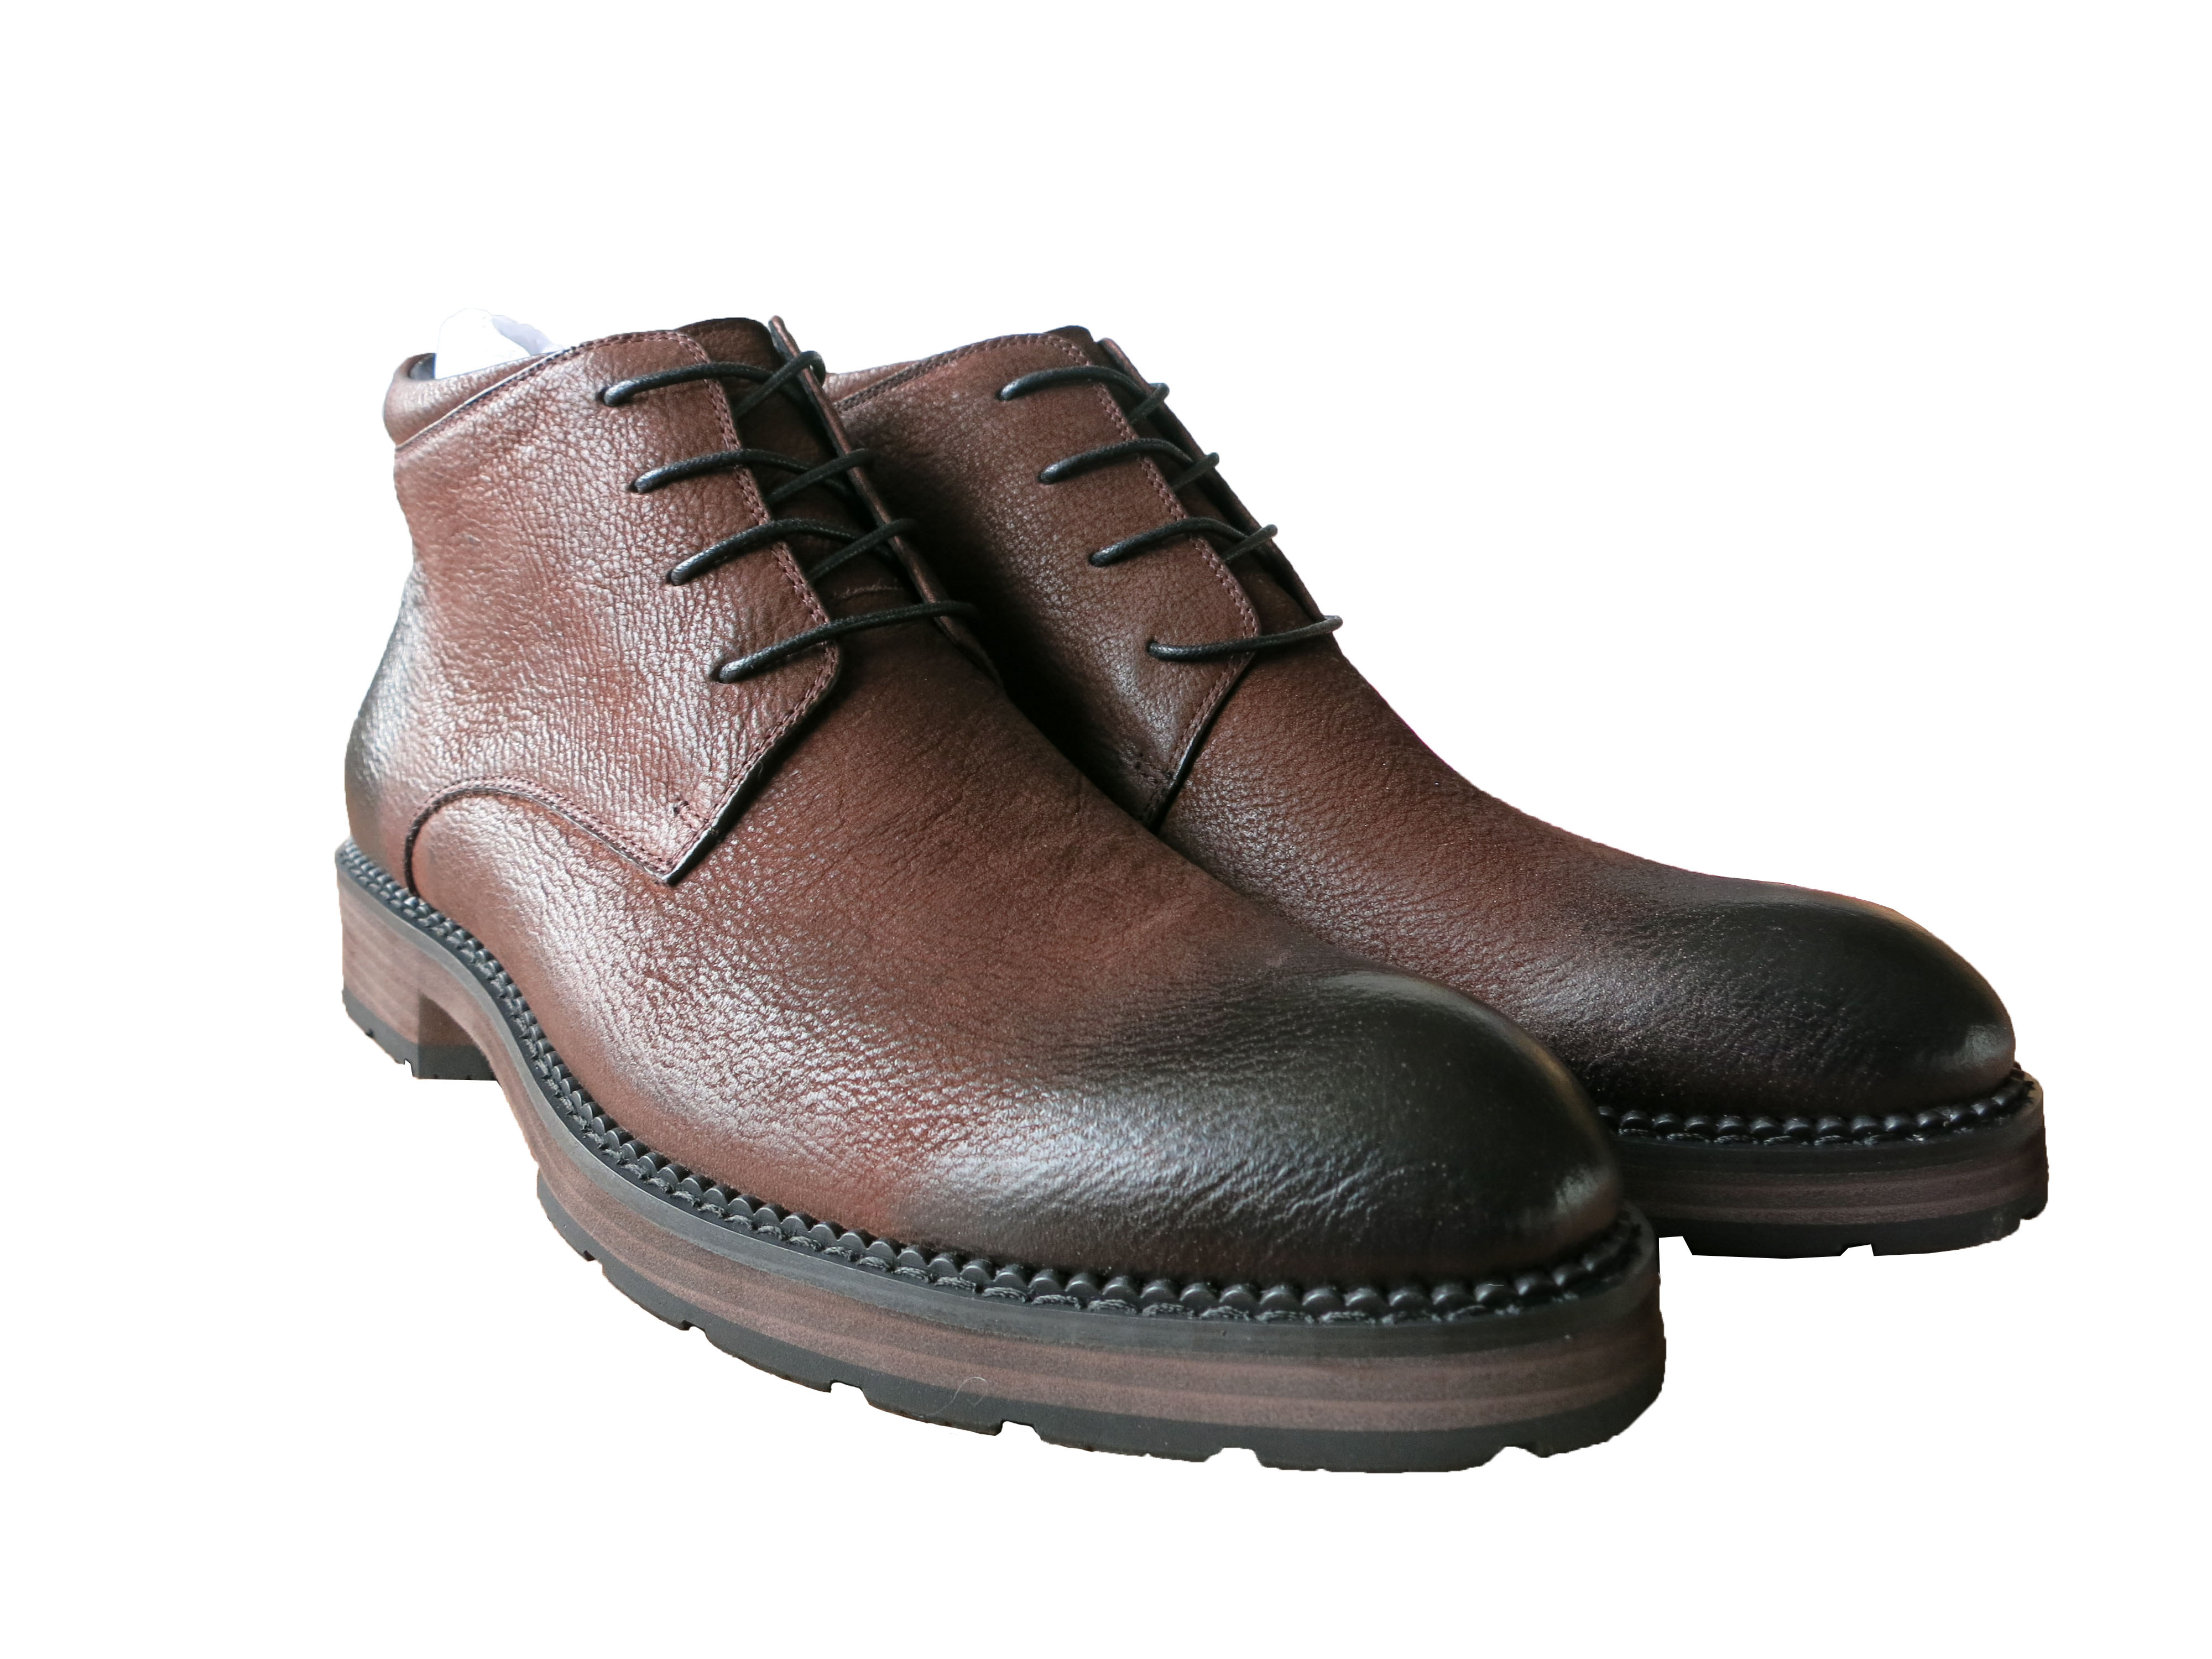 HUISUNG mens full grain leather boots